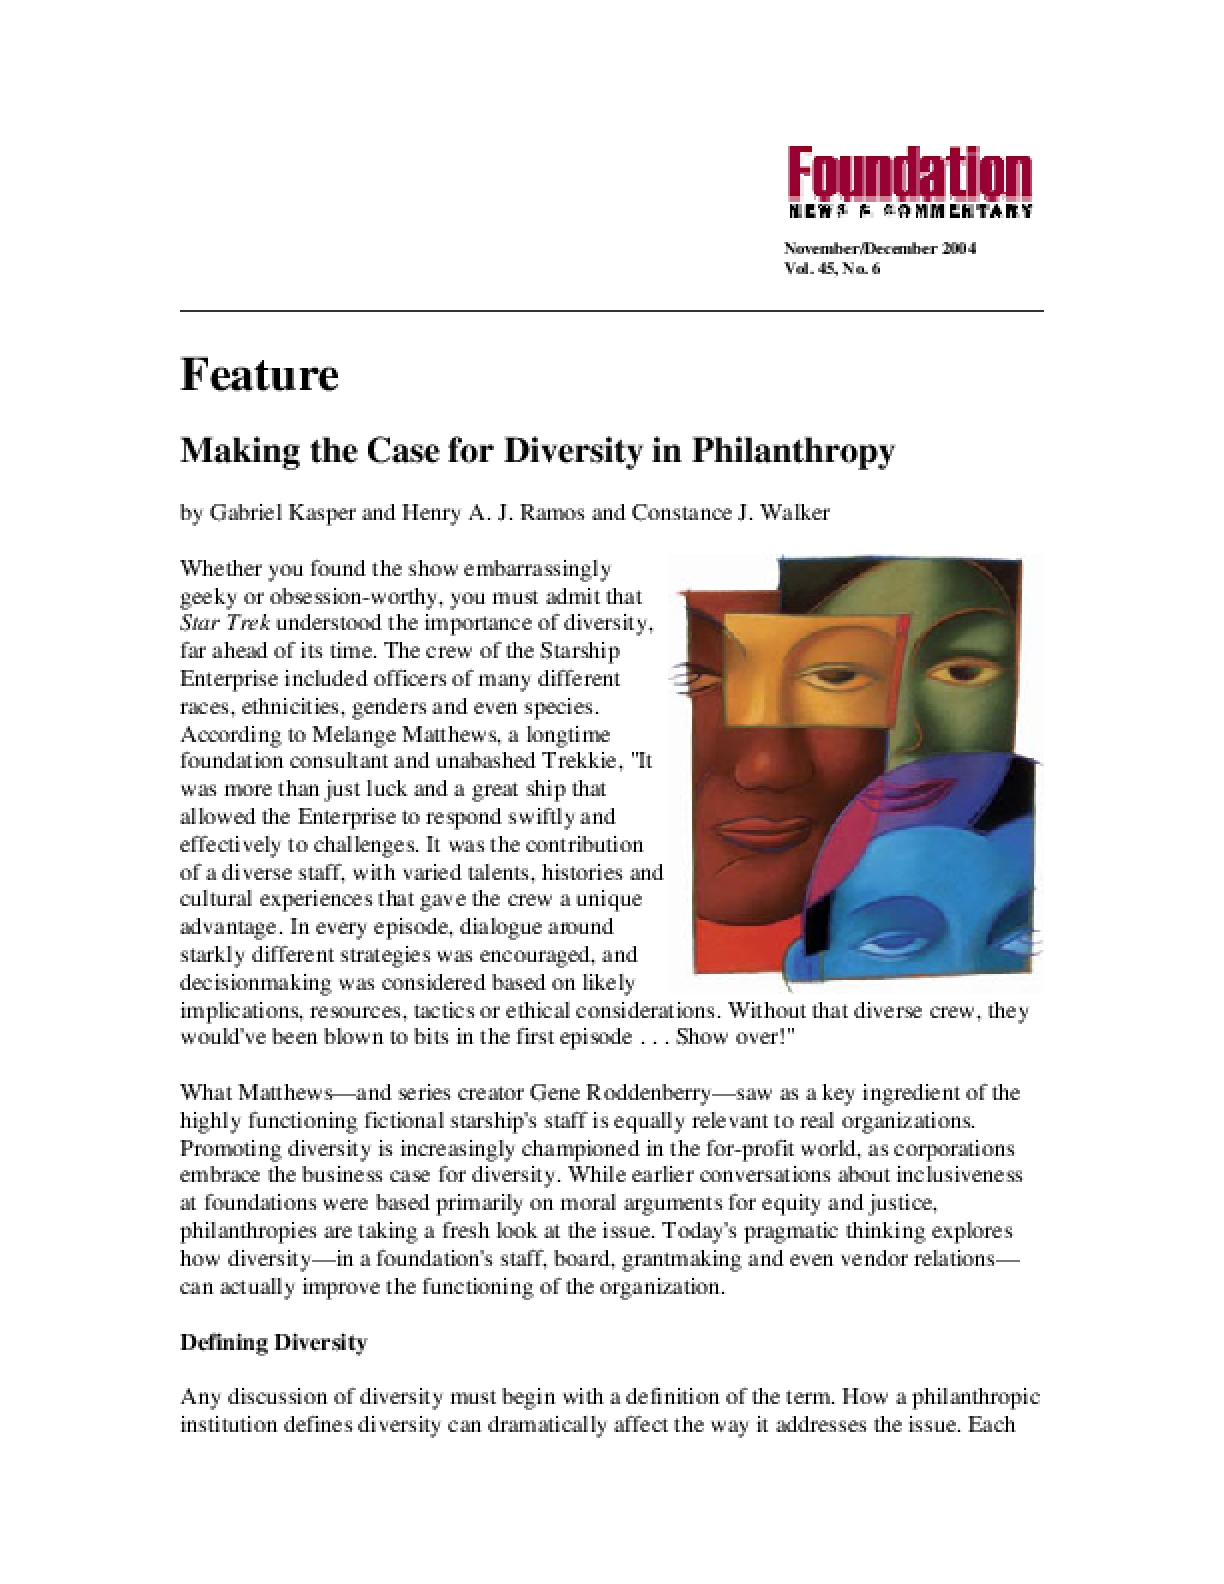 Making the Case for Diversity in Philanthropy